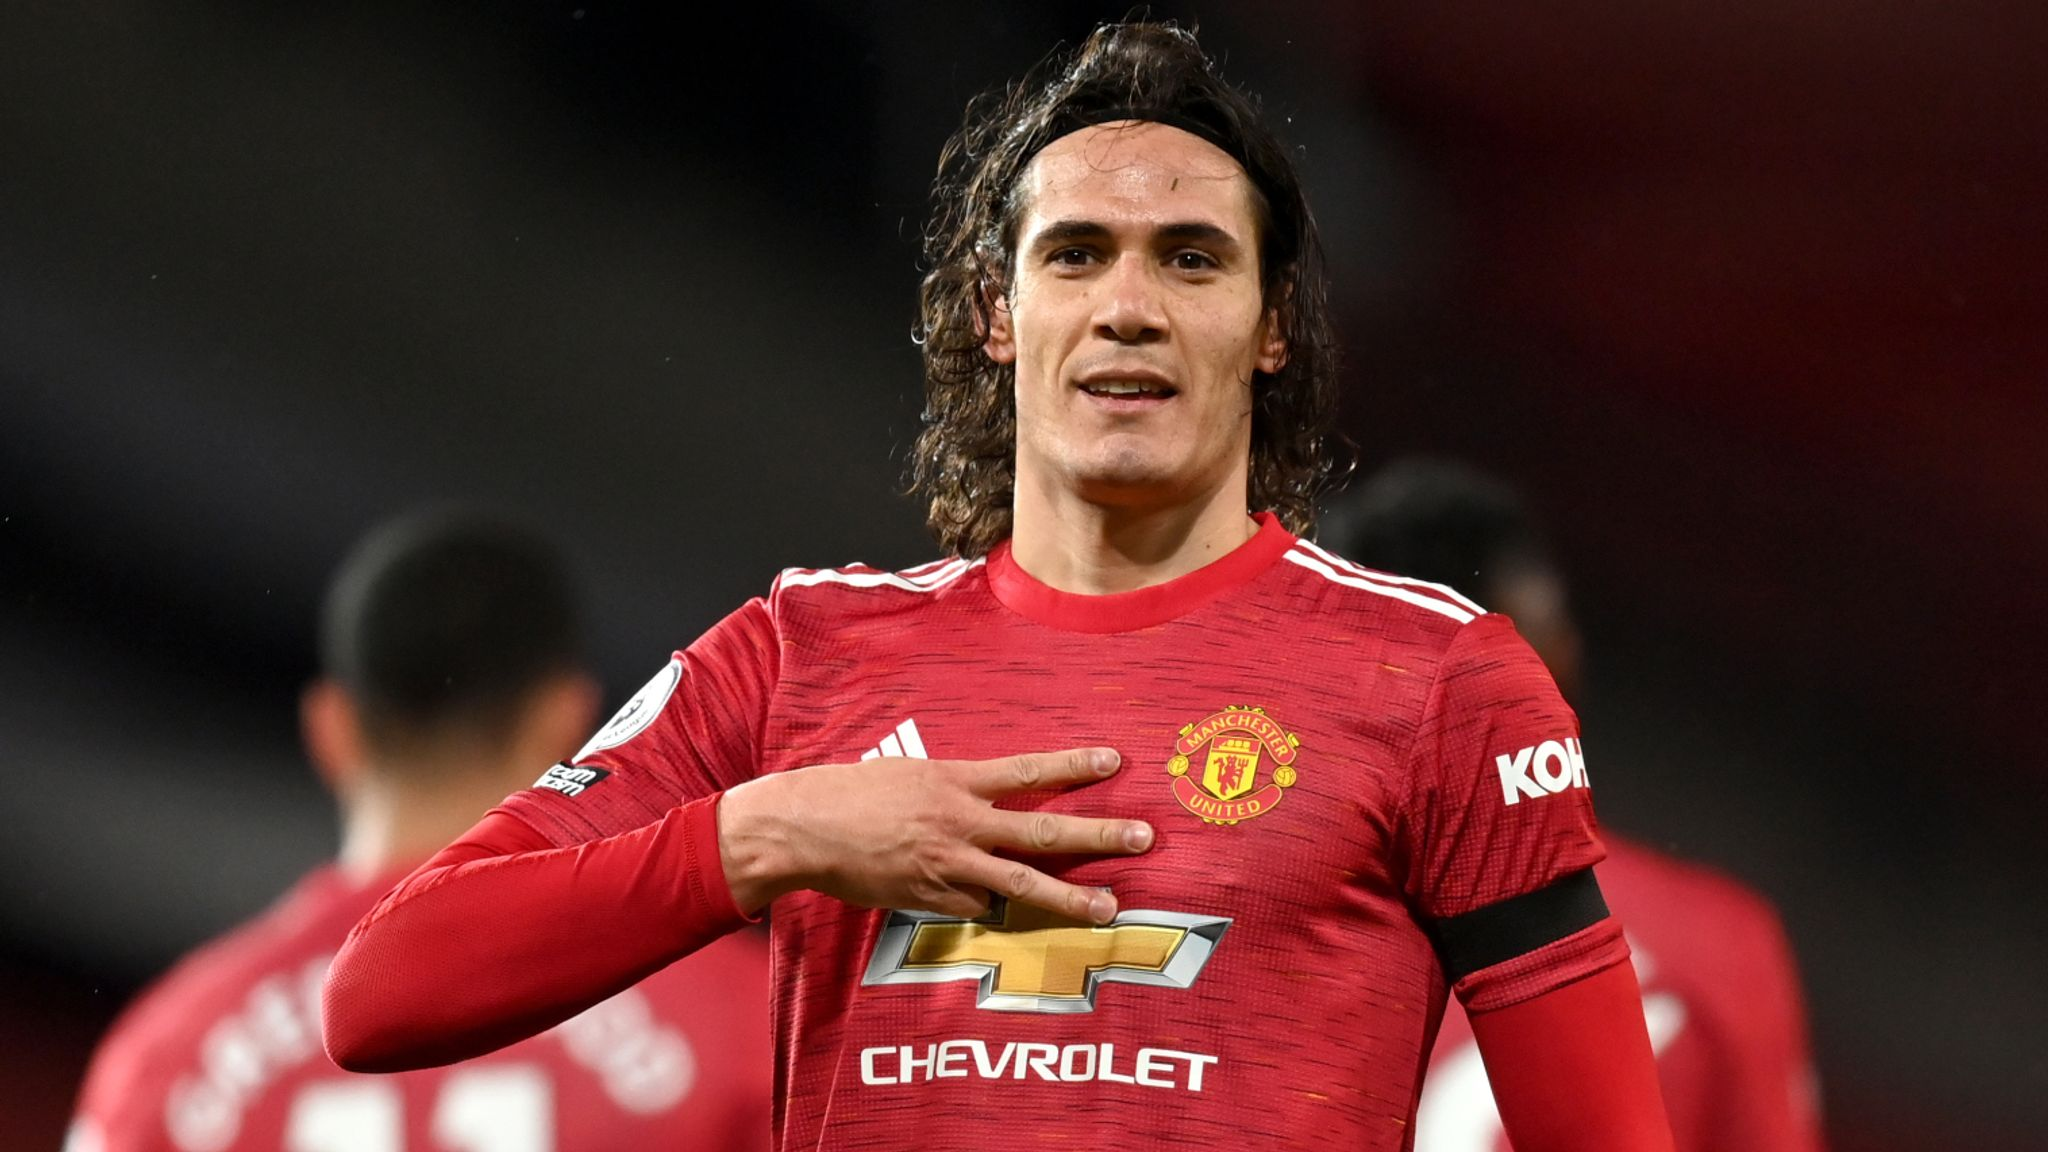 Edinson Cavani increasingly likely to leave Manchester United to join Boca  Juniors next season, says father Luis | Football News | Sky Sports